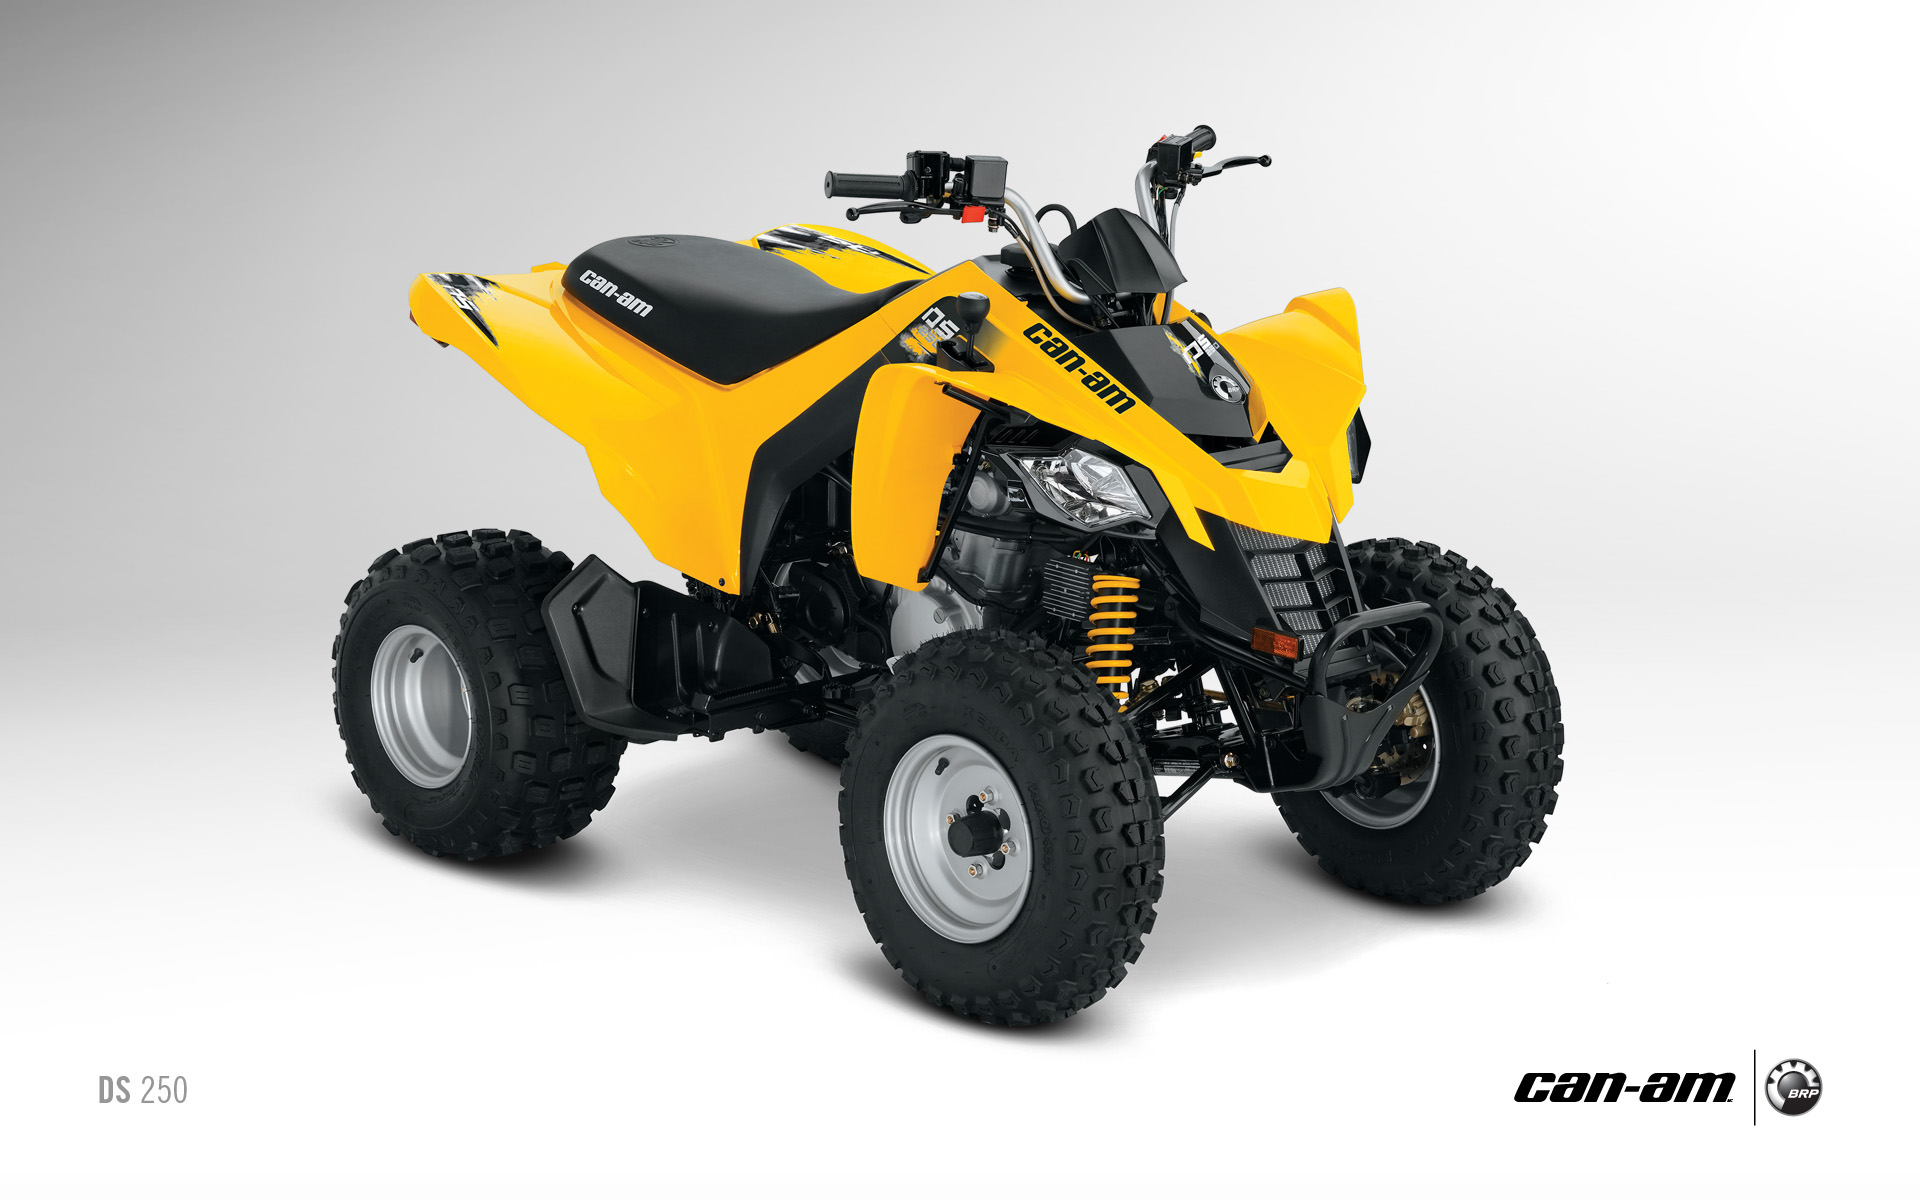 2013 Can-Am DS 250, an Entry-Level Sport ATV - autoevolution